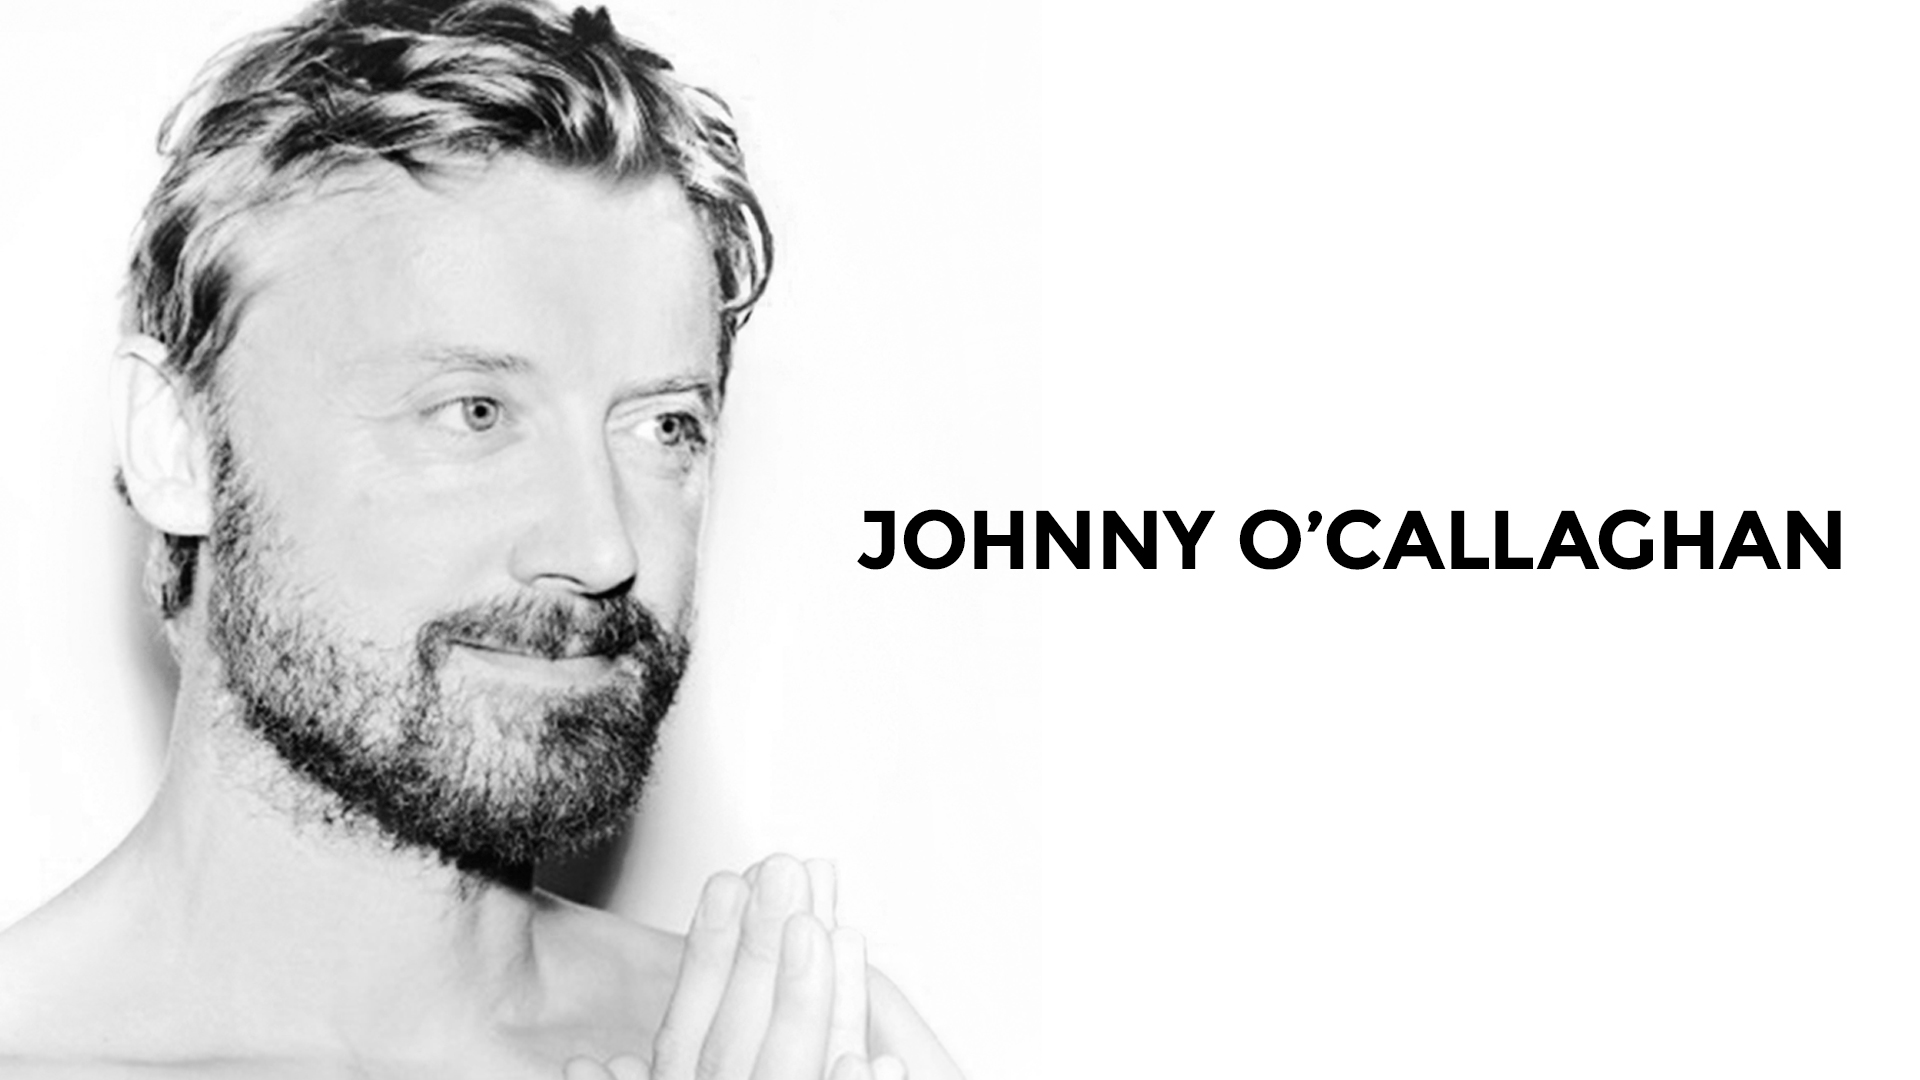 JOHNNY O'CALLAGHAN.jpg